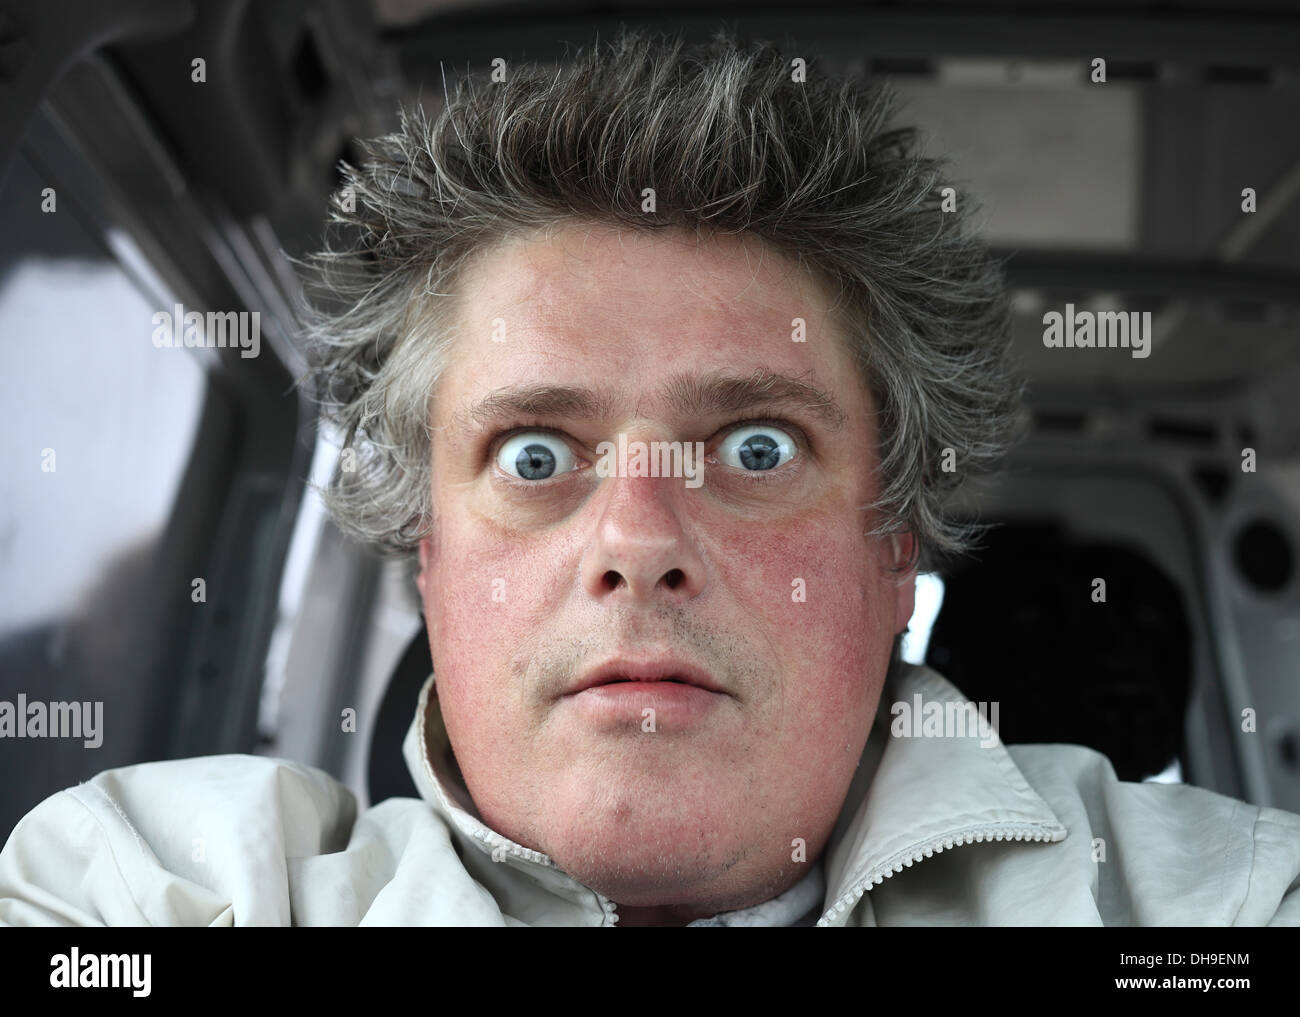 Wide eyed, odd expression on the face of a middle aged white male. - Stock Image